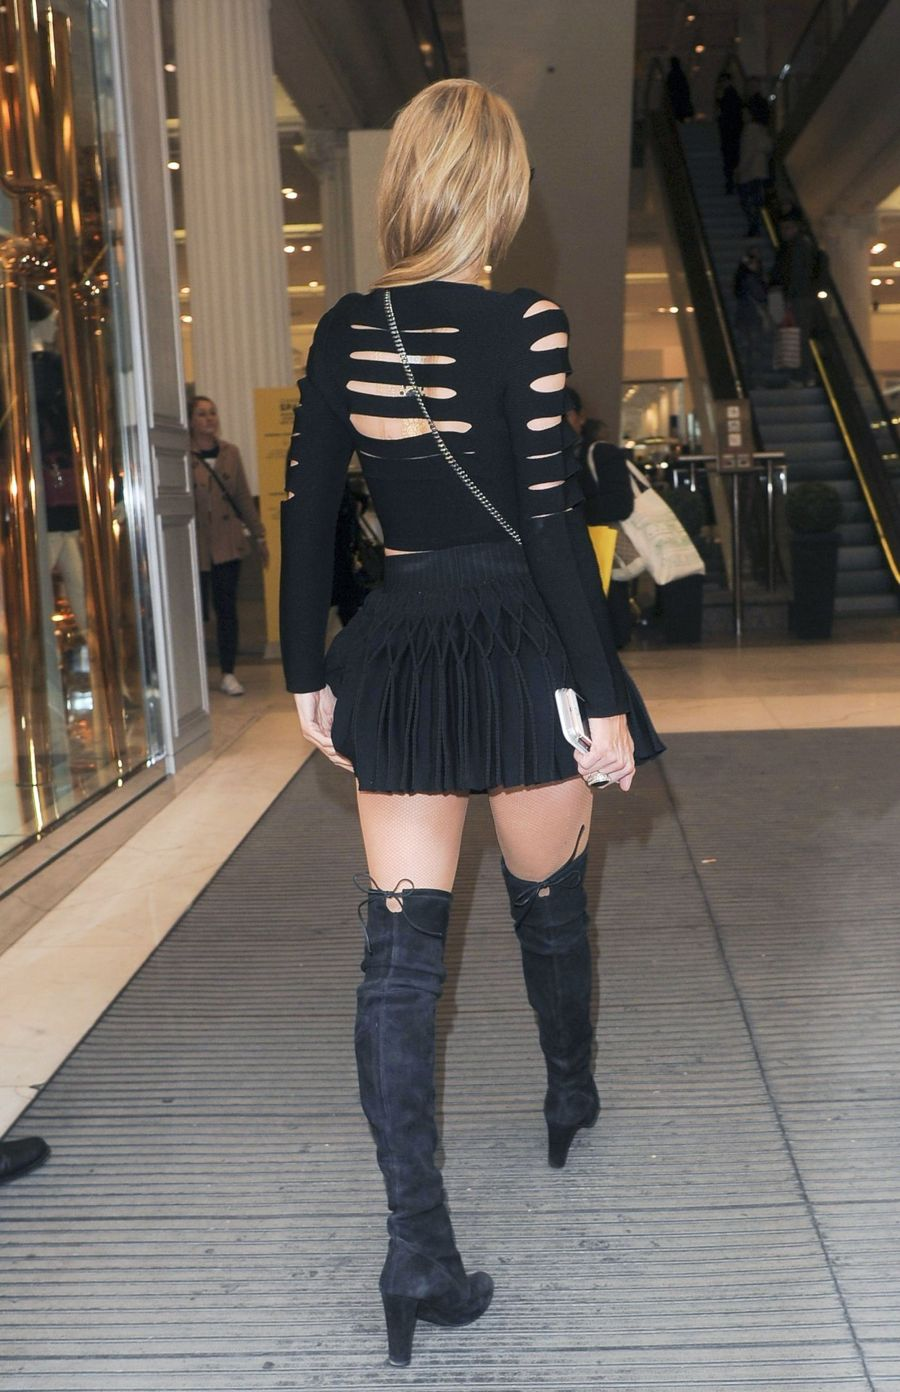 Paris Hilton Spotted in Black in London